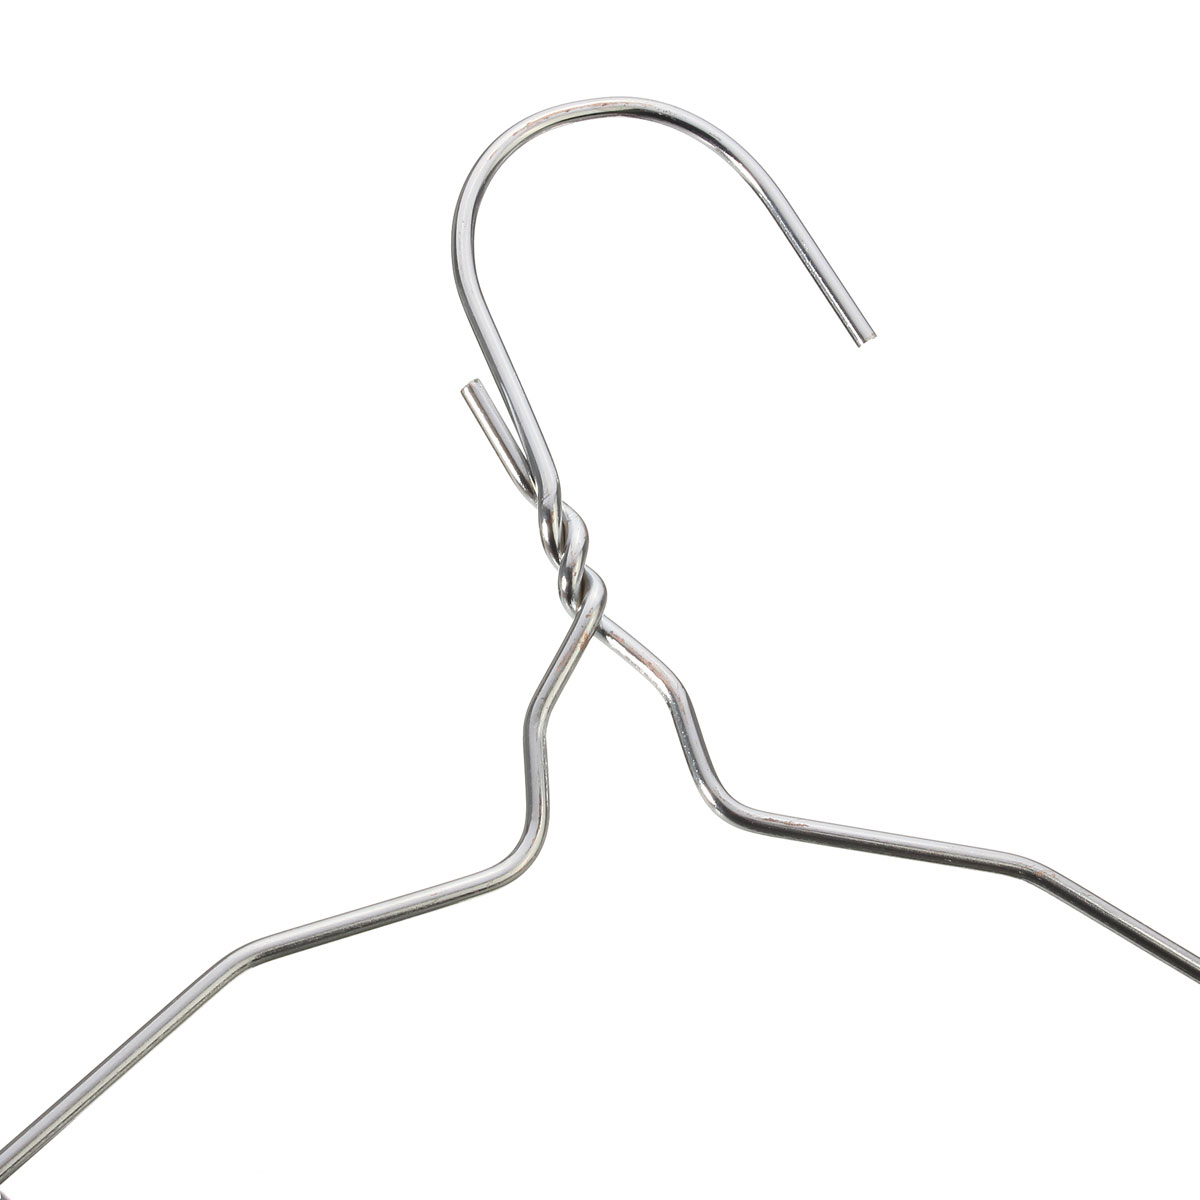 10pcs Silver Stainless Steel 40cm Metal Wire Hangers